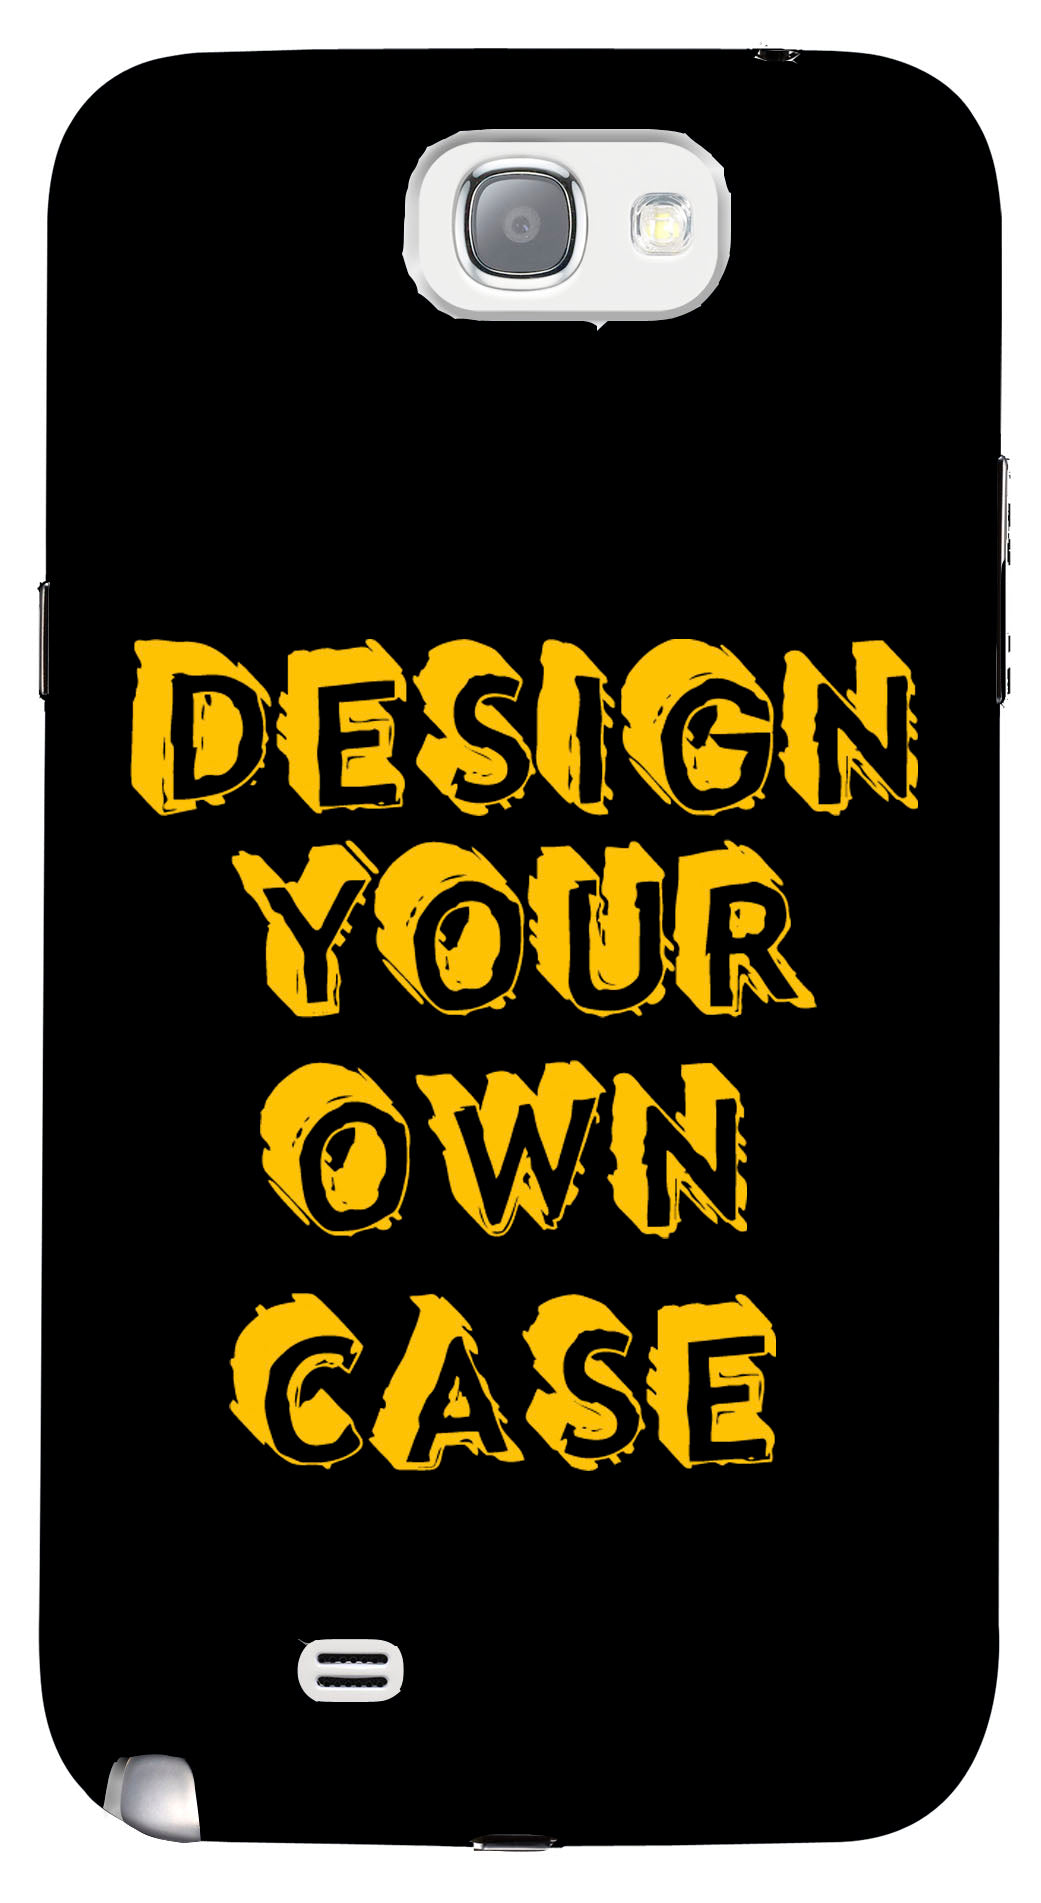 Design Your Own Case for Samsung Galaxy note 2